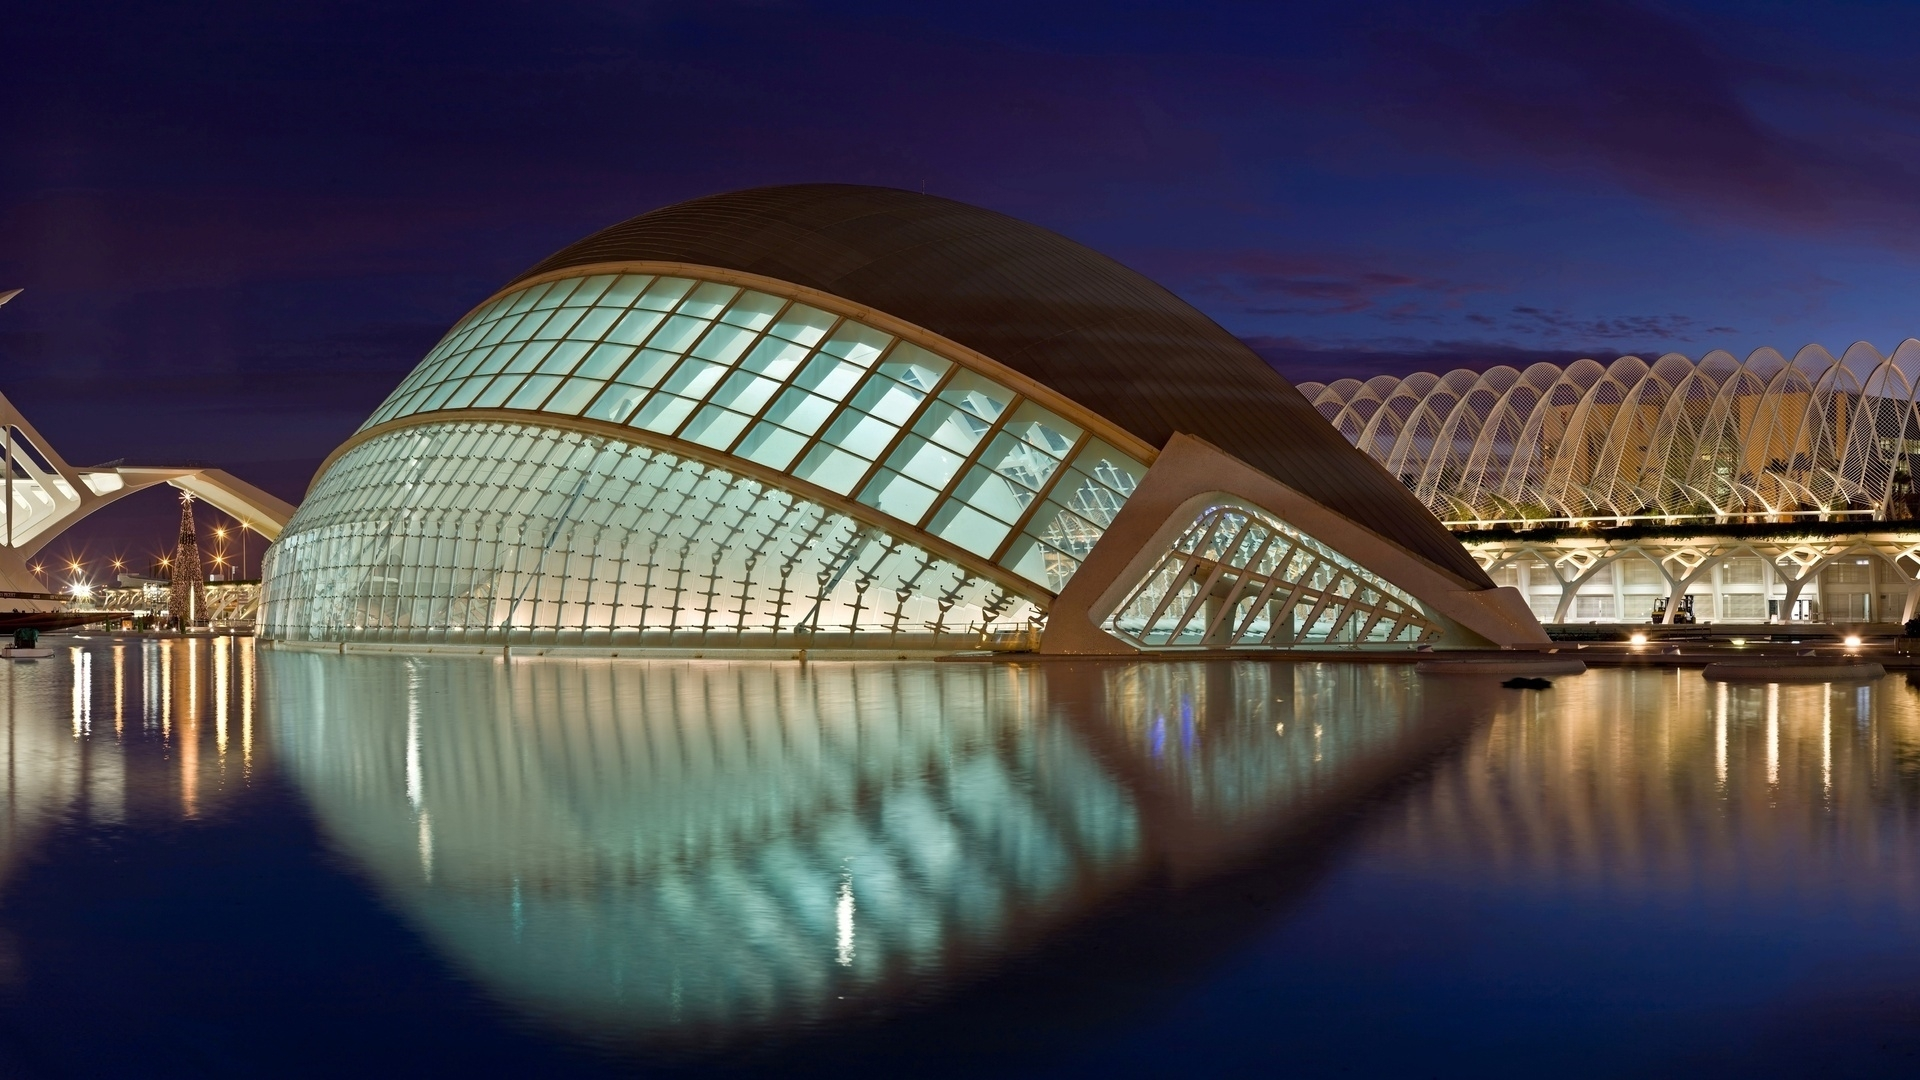 Spain wallpapers pictures images - Arquitectura en valencia ...